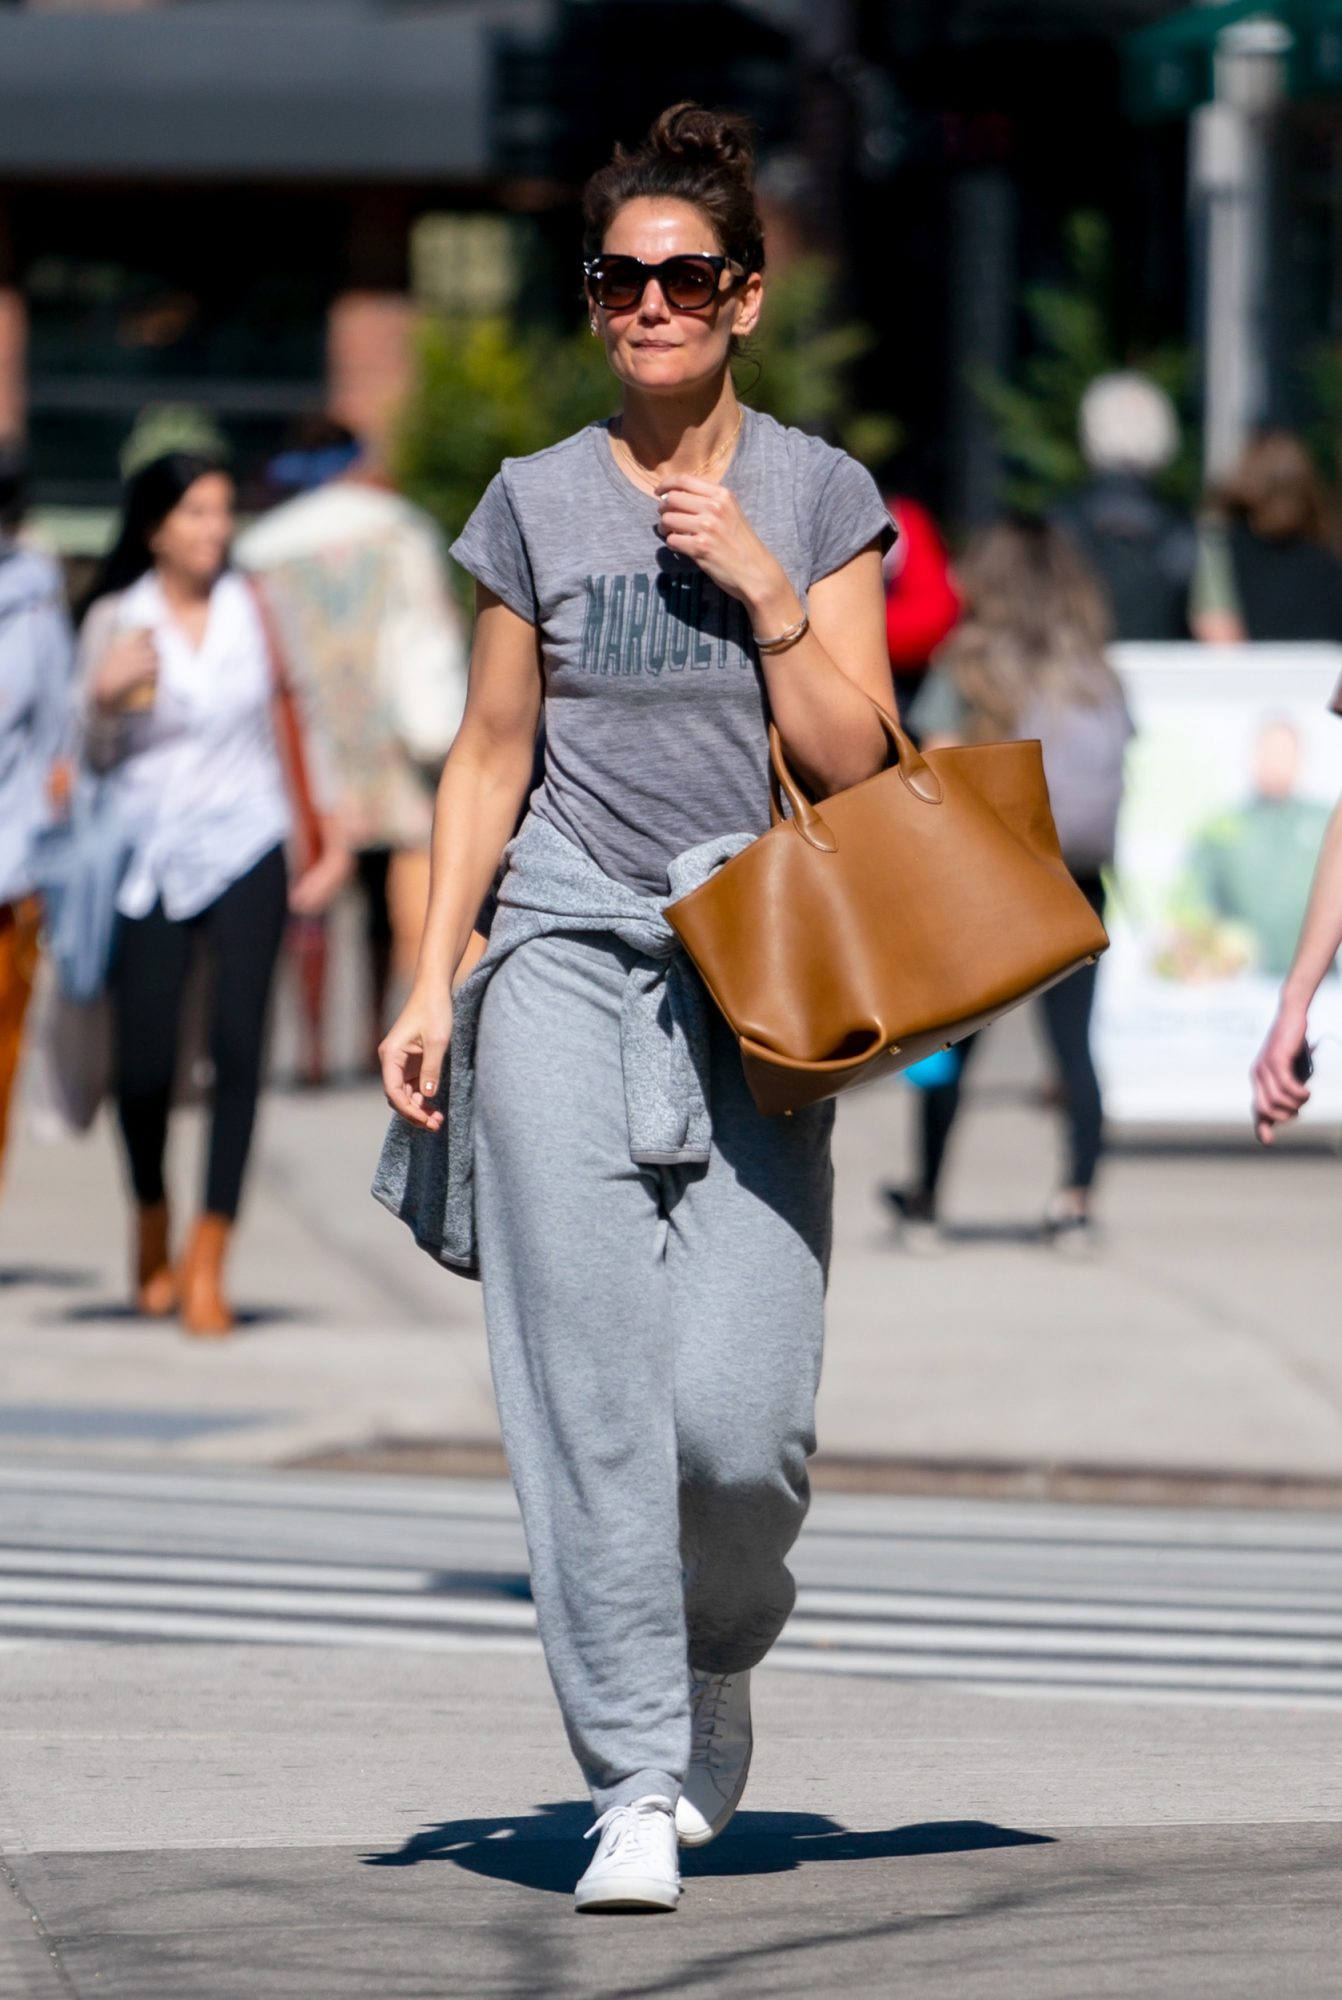 Celebrities keep wearing this oversized bag trend